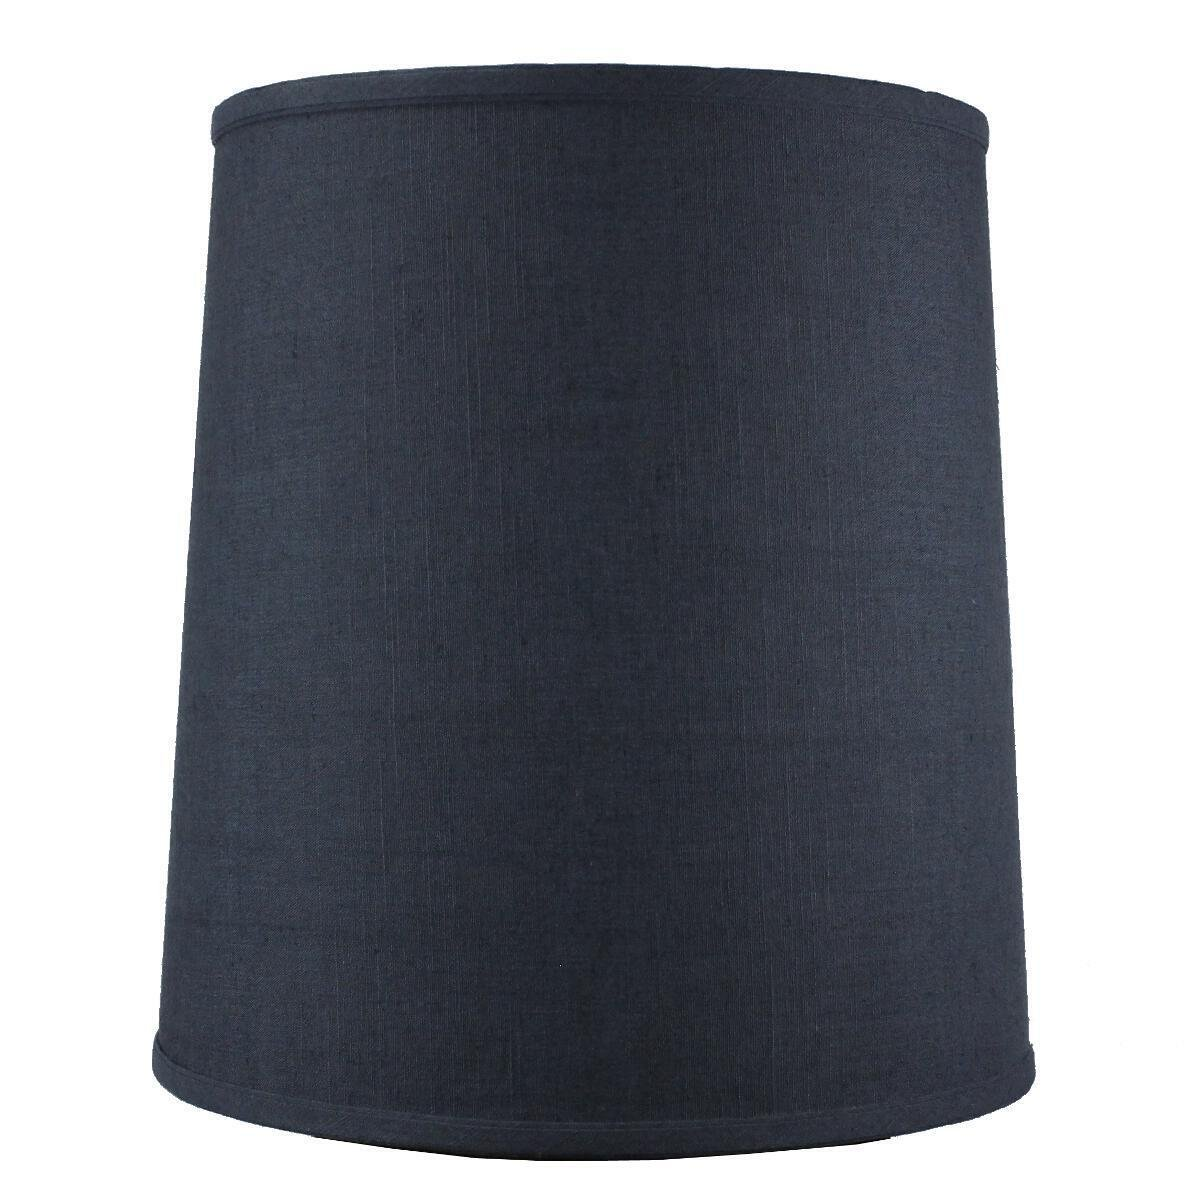 12x14x15 Textured Slate Blue Medium Drum Cylinder Lampshade with Brass Spider fitter By Home Concept - Perfect for table and Desk lamps - Medium, Blue